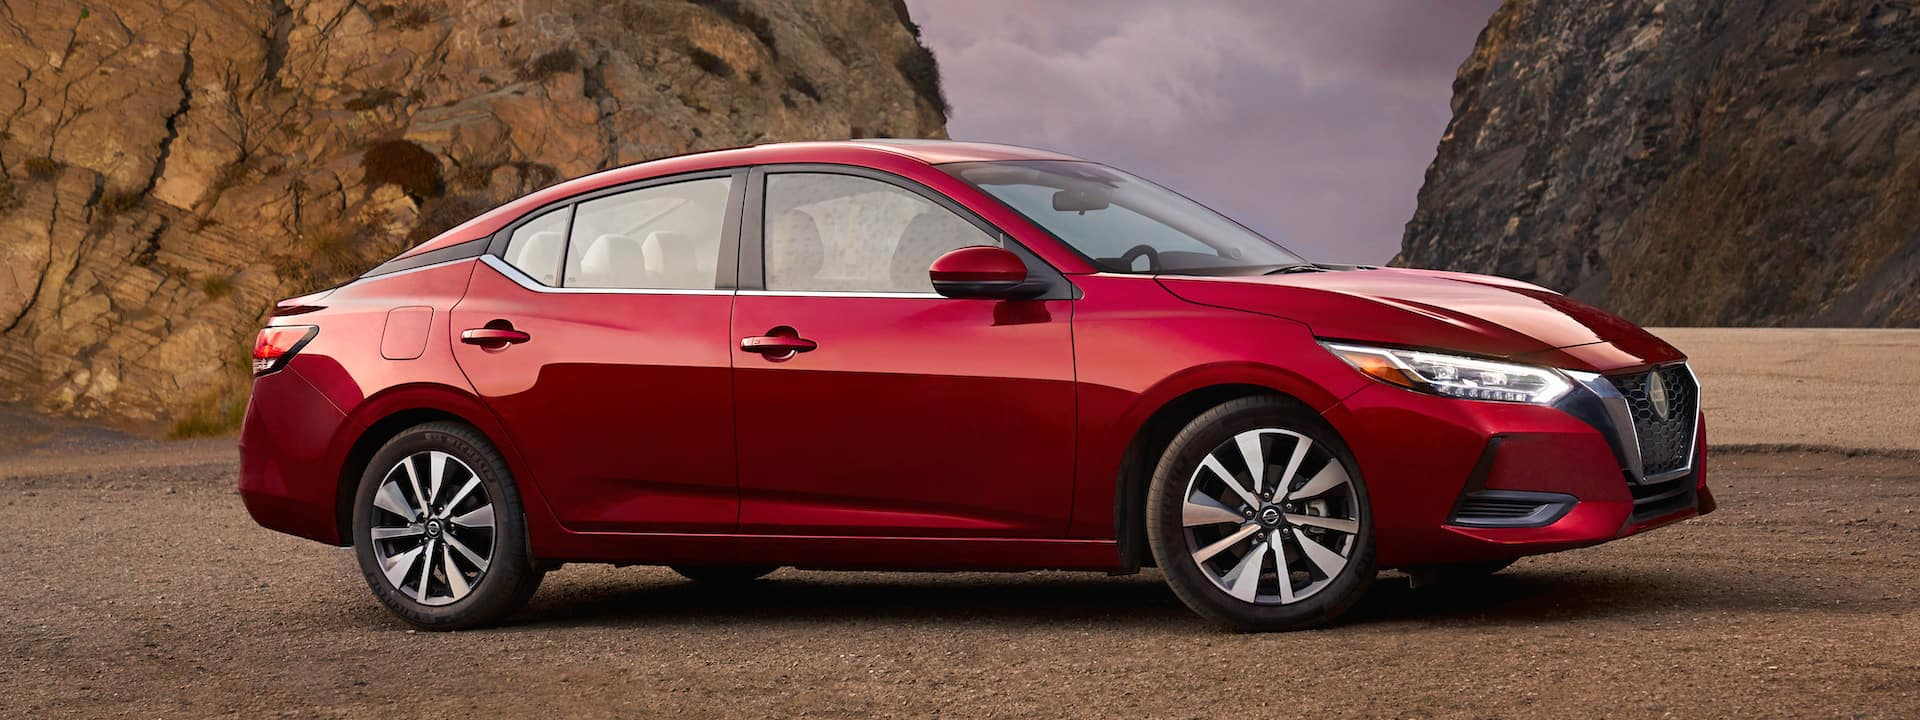 2020 NIssan Sentra for sale in Los Angeles